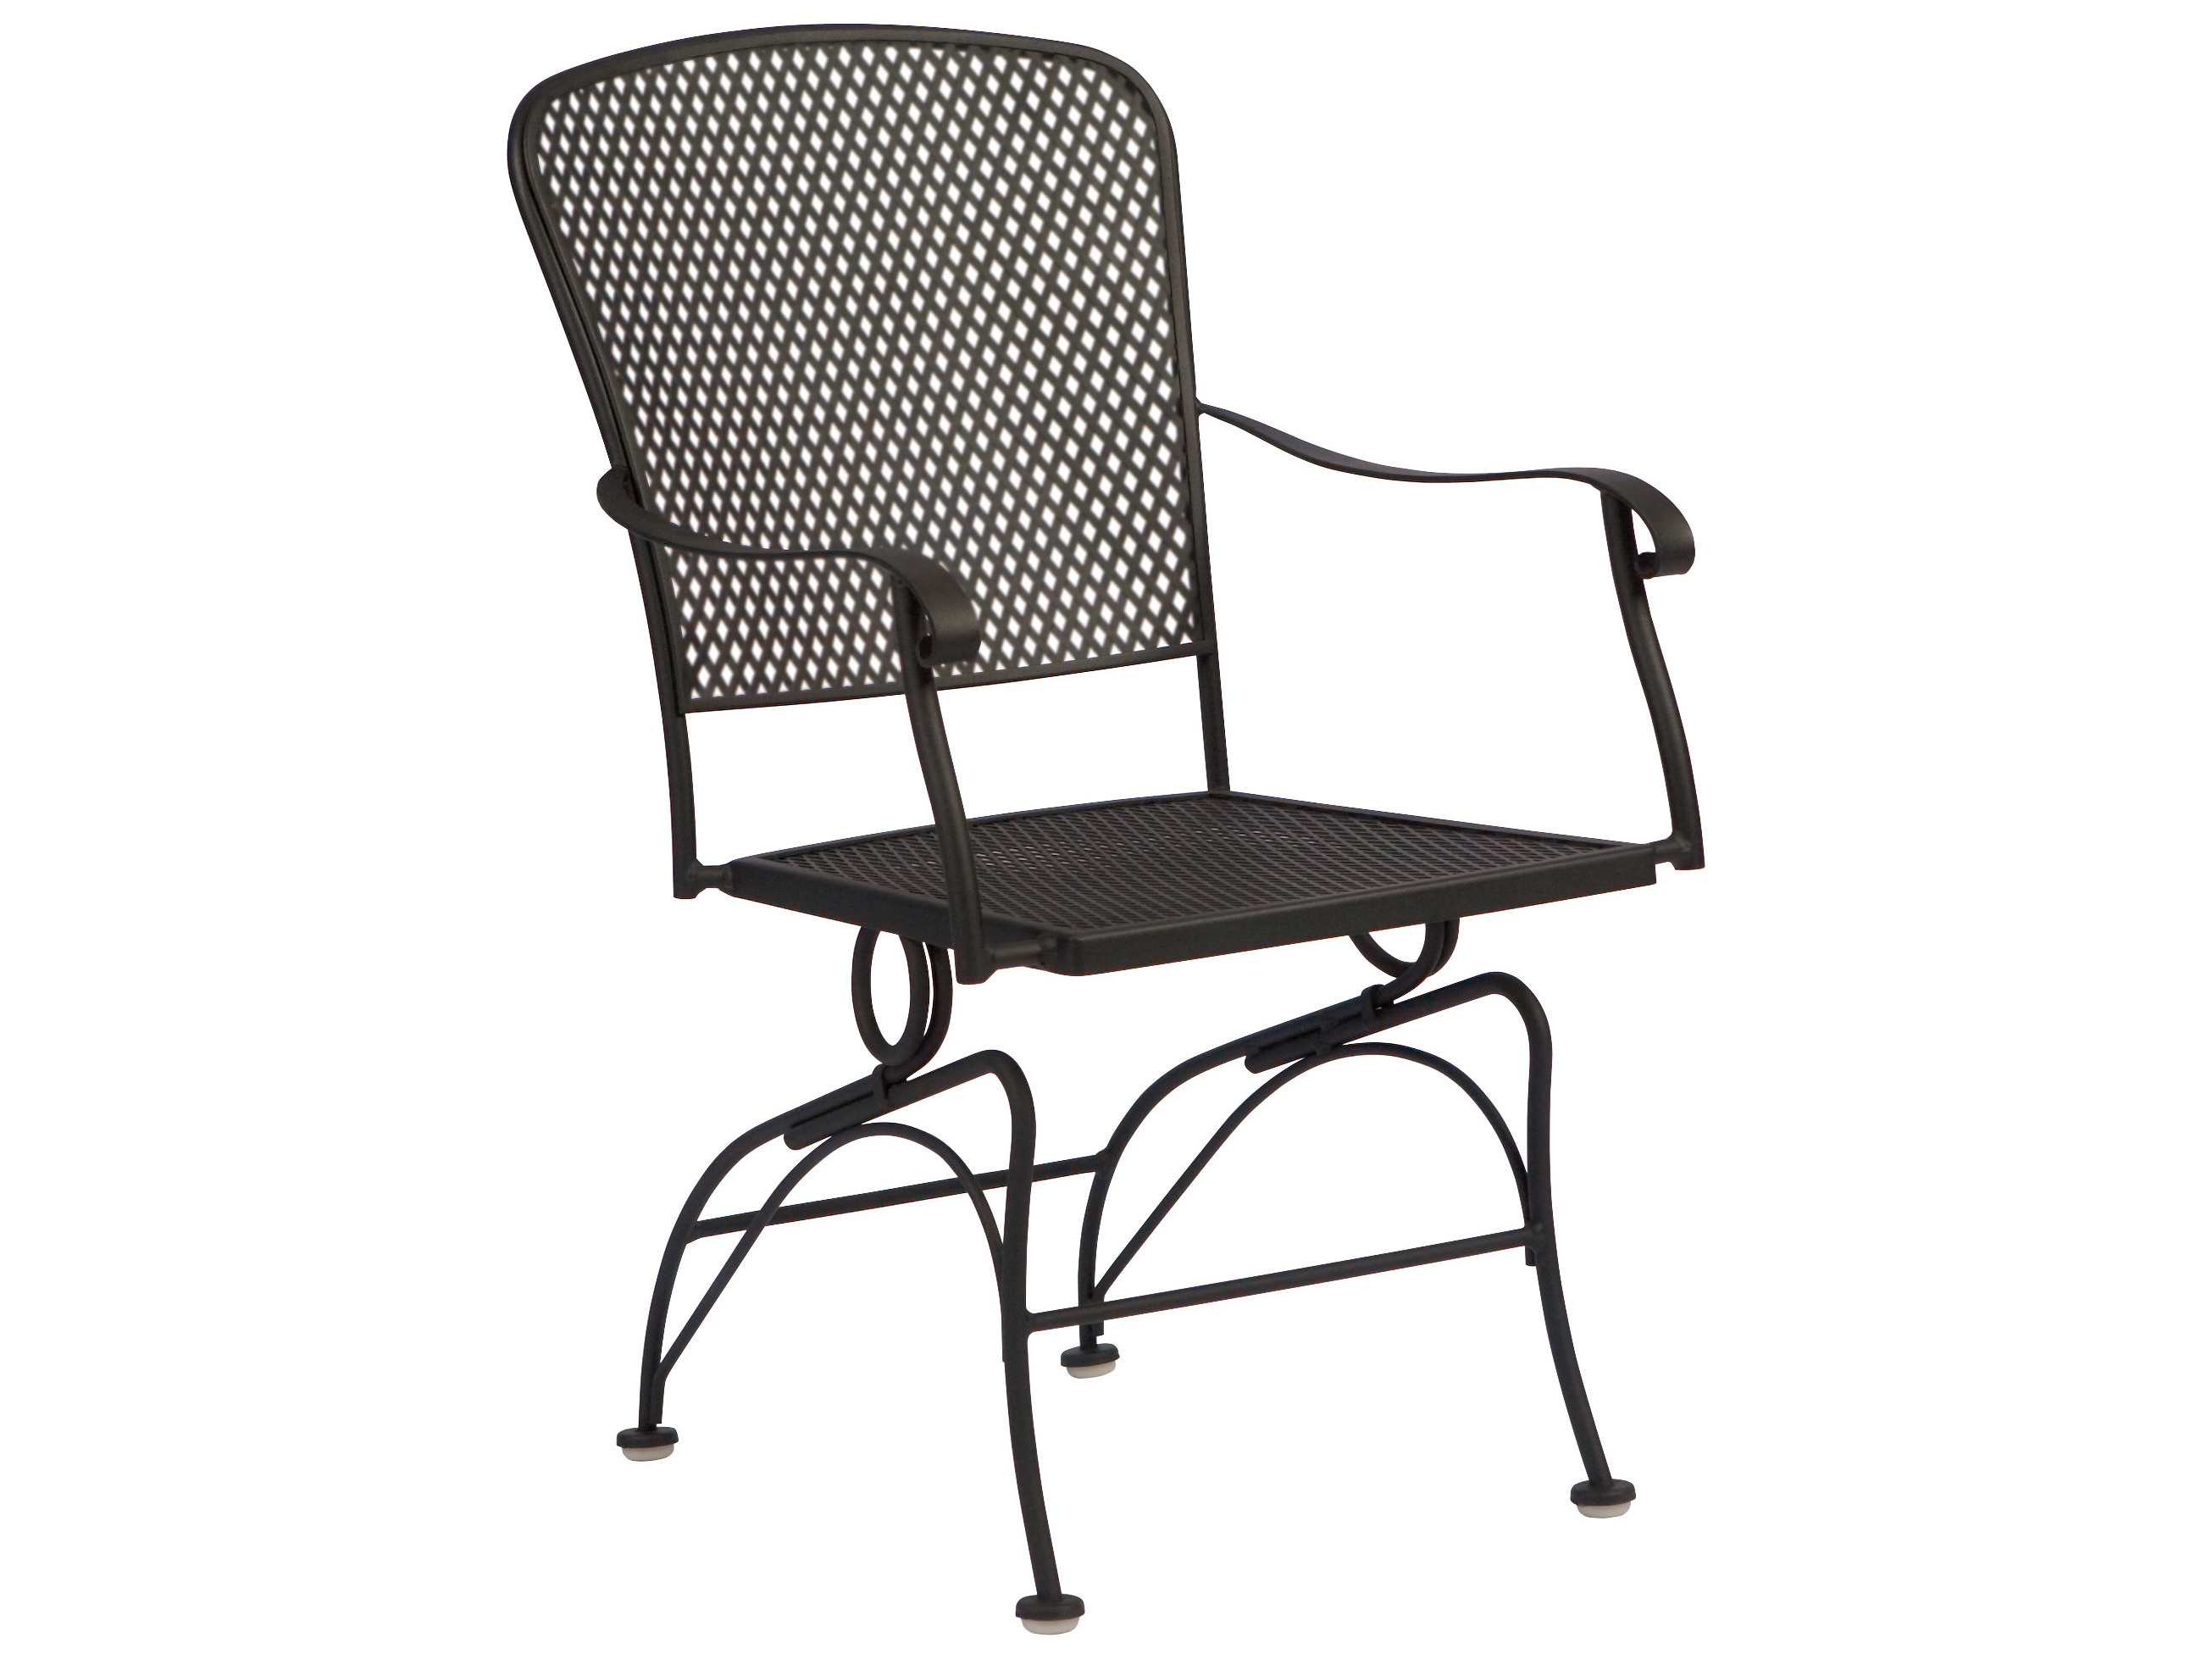 Woodard Fullerton Coil Spring Dining Chair Replacement